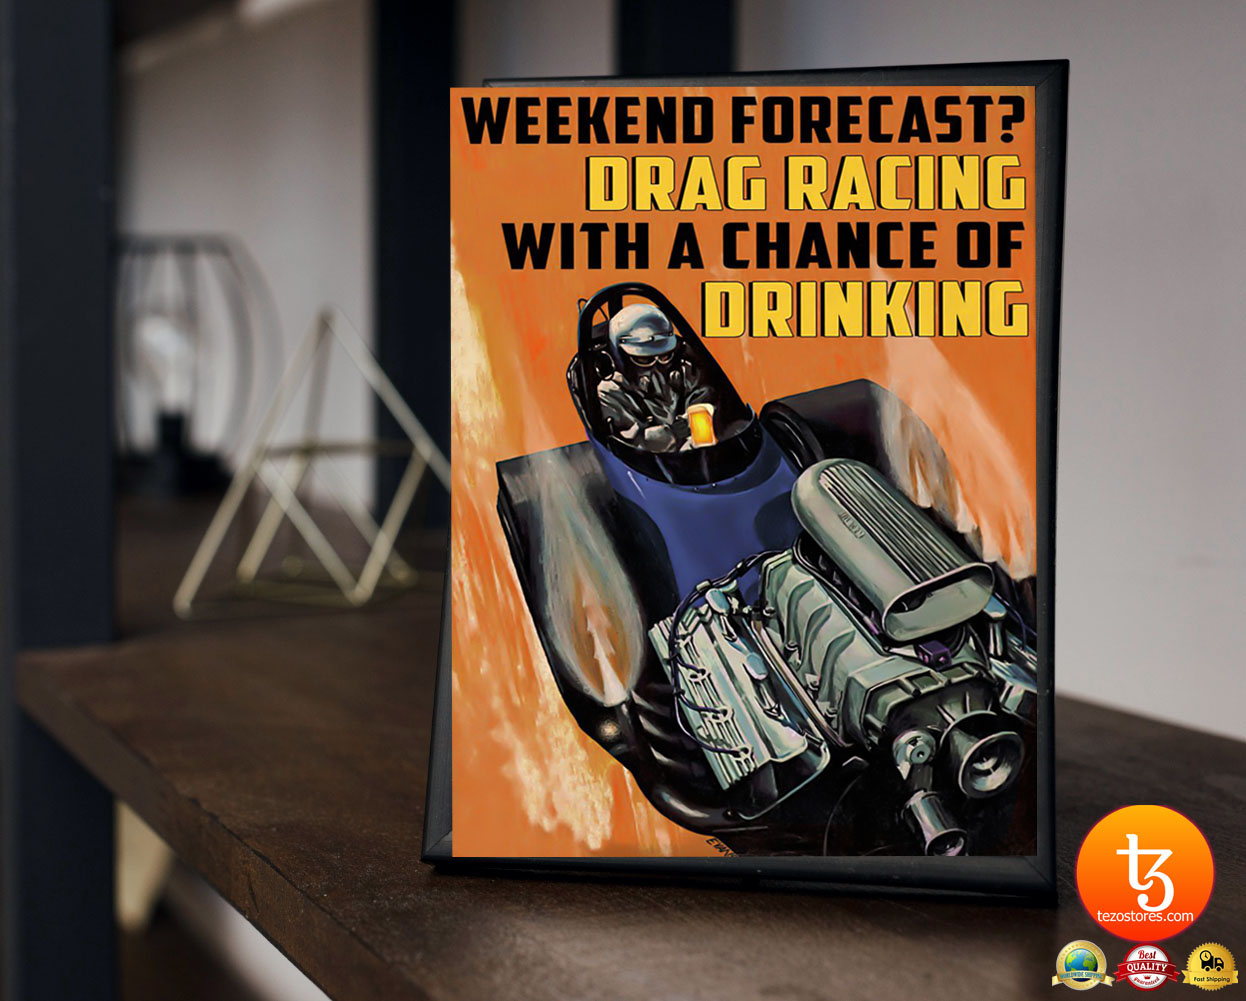 Weekend forecast drag racing with a chance of drinking poster 23